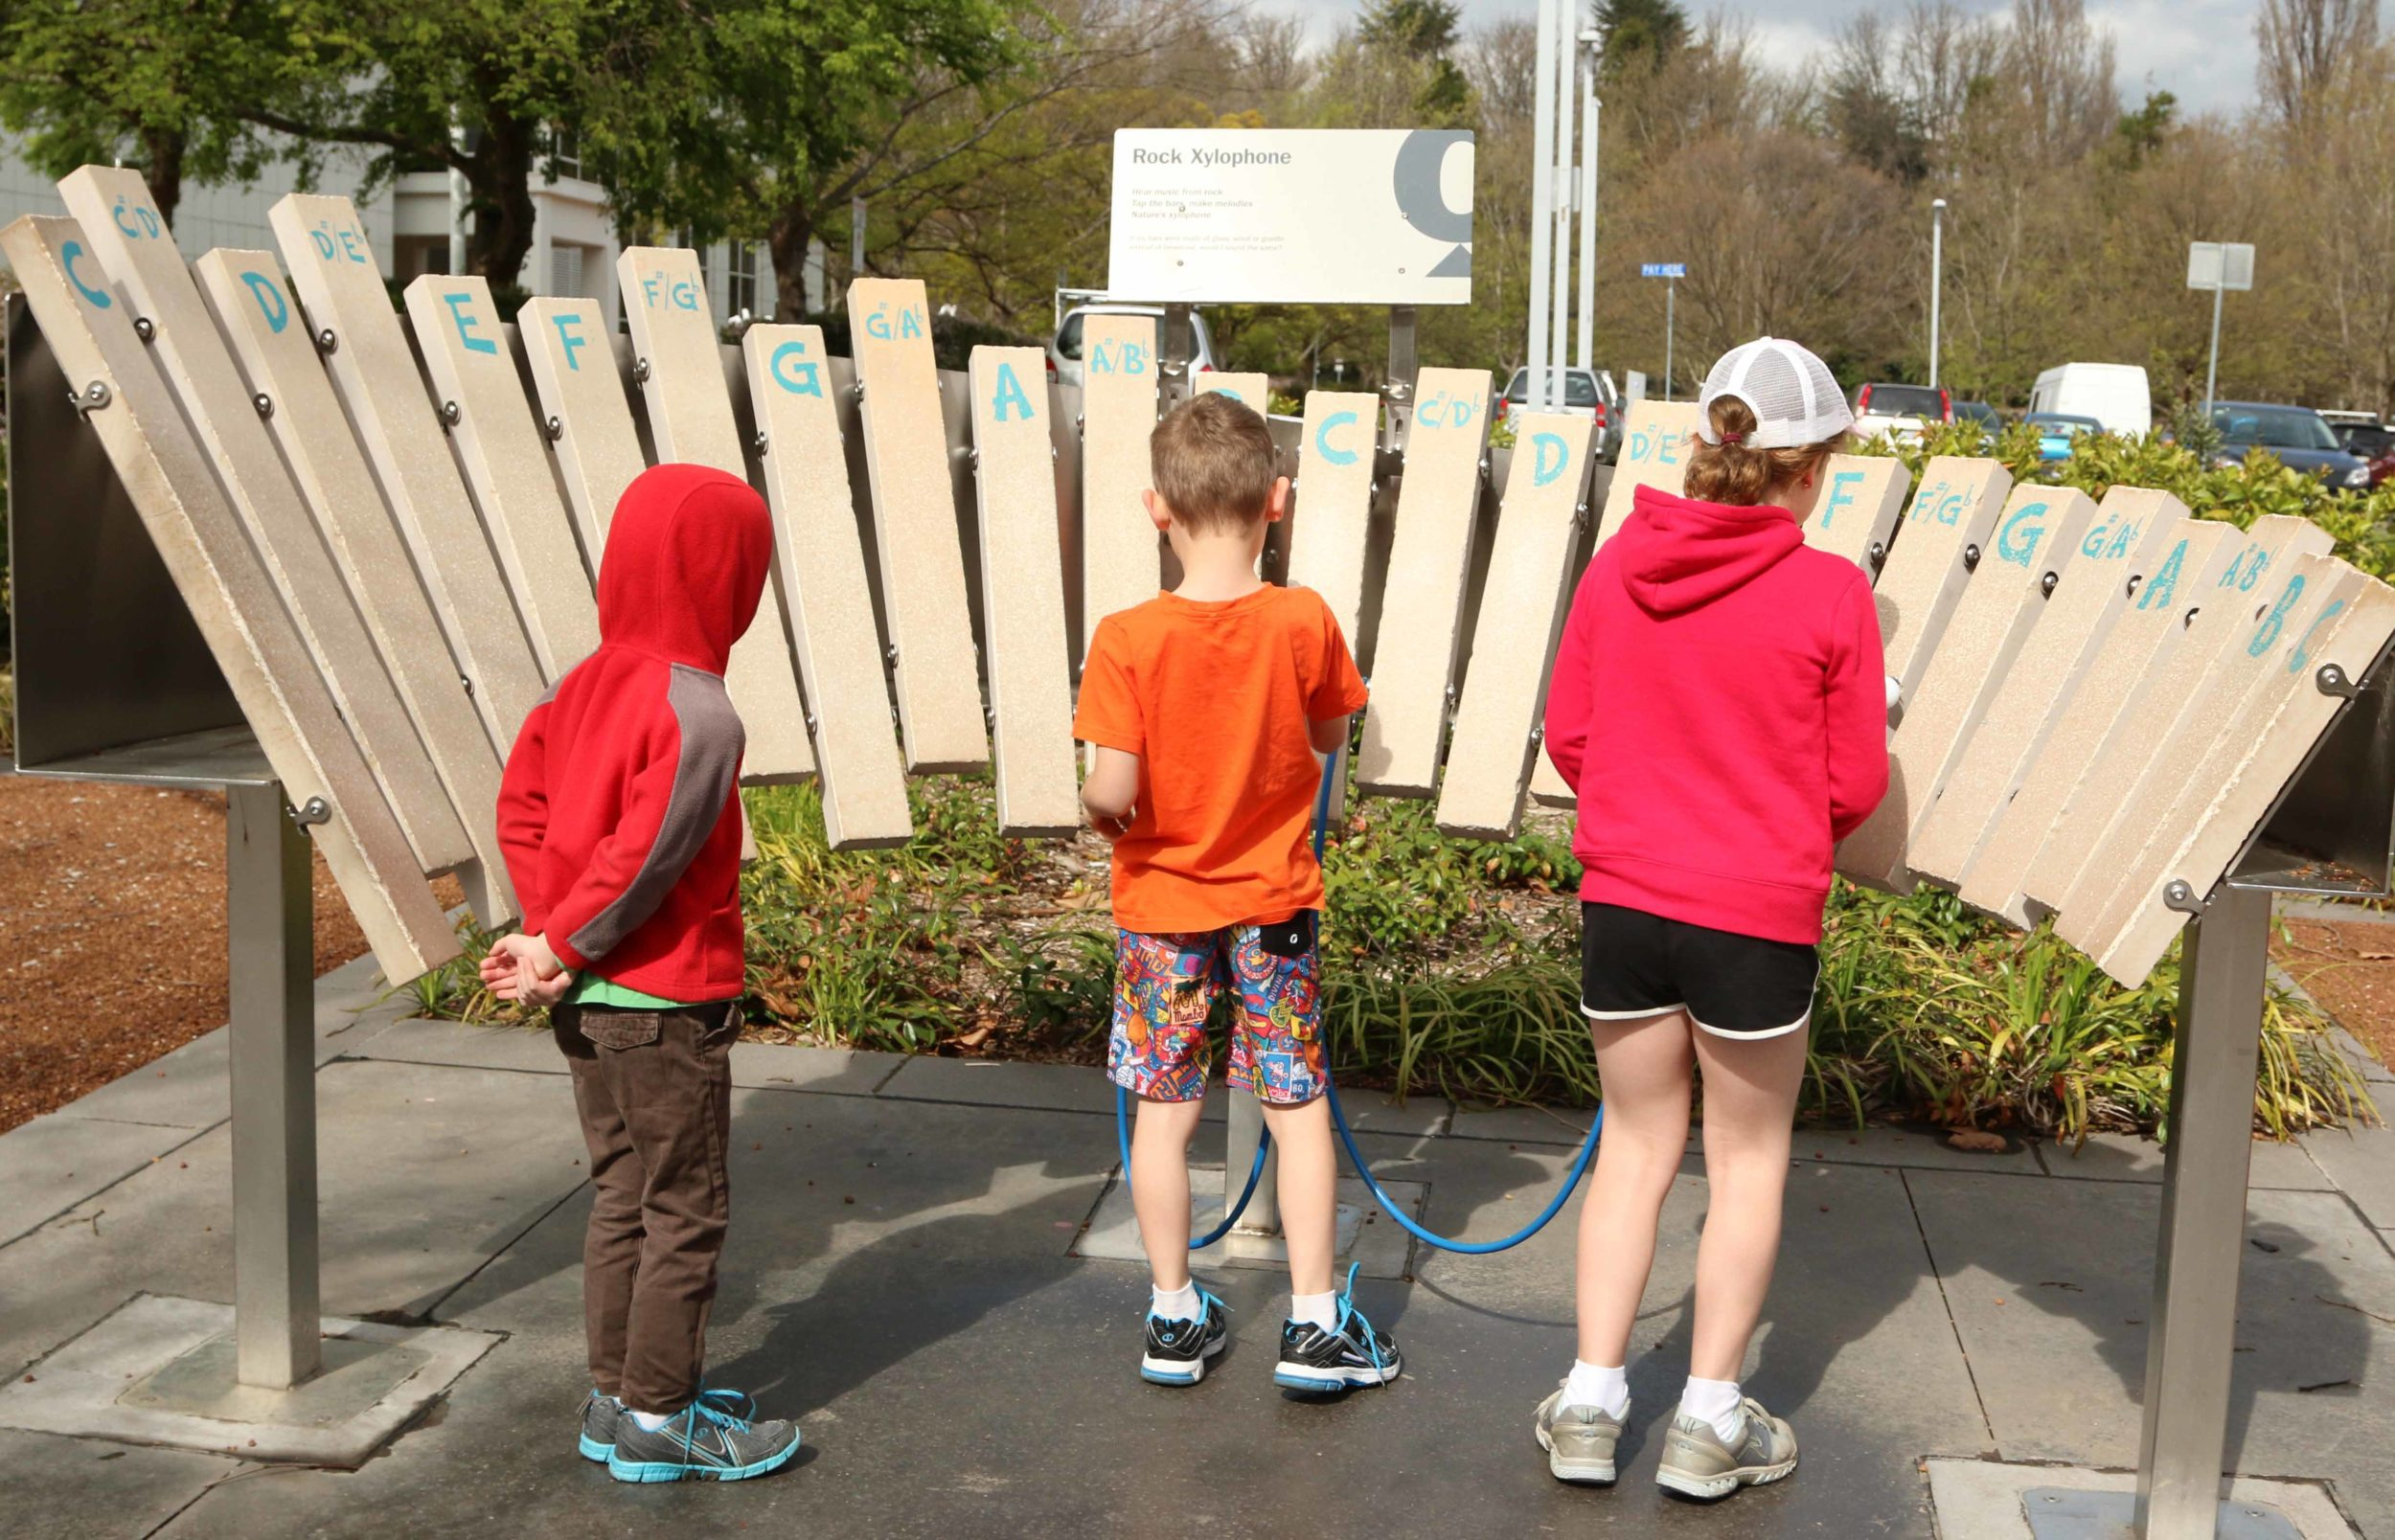 Our Children Playing the Xylophone near Questacon in Canberra Australia